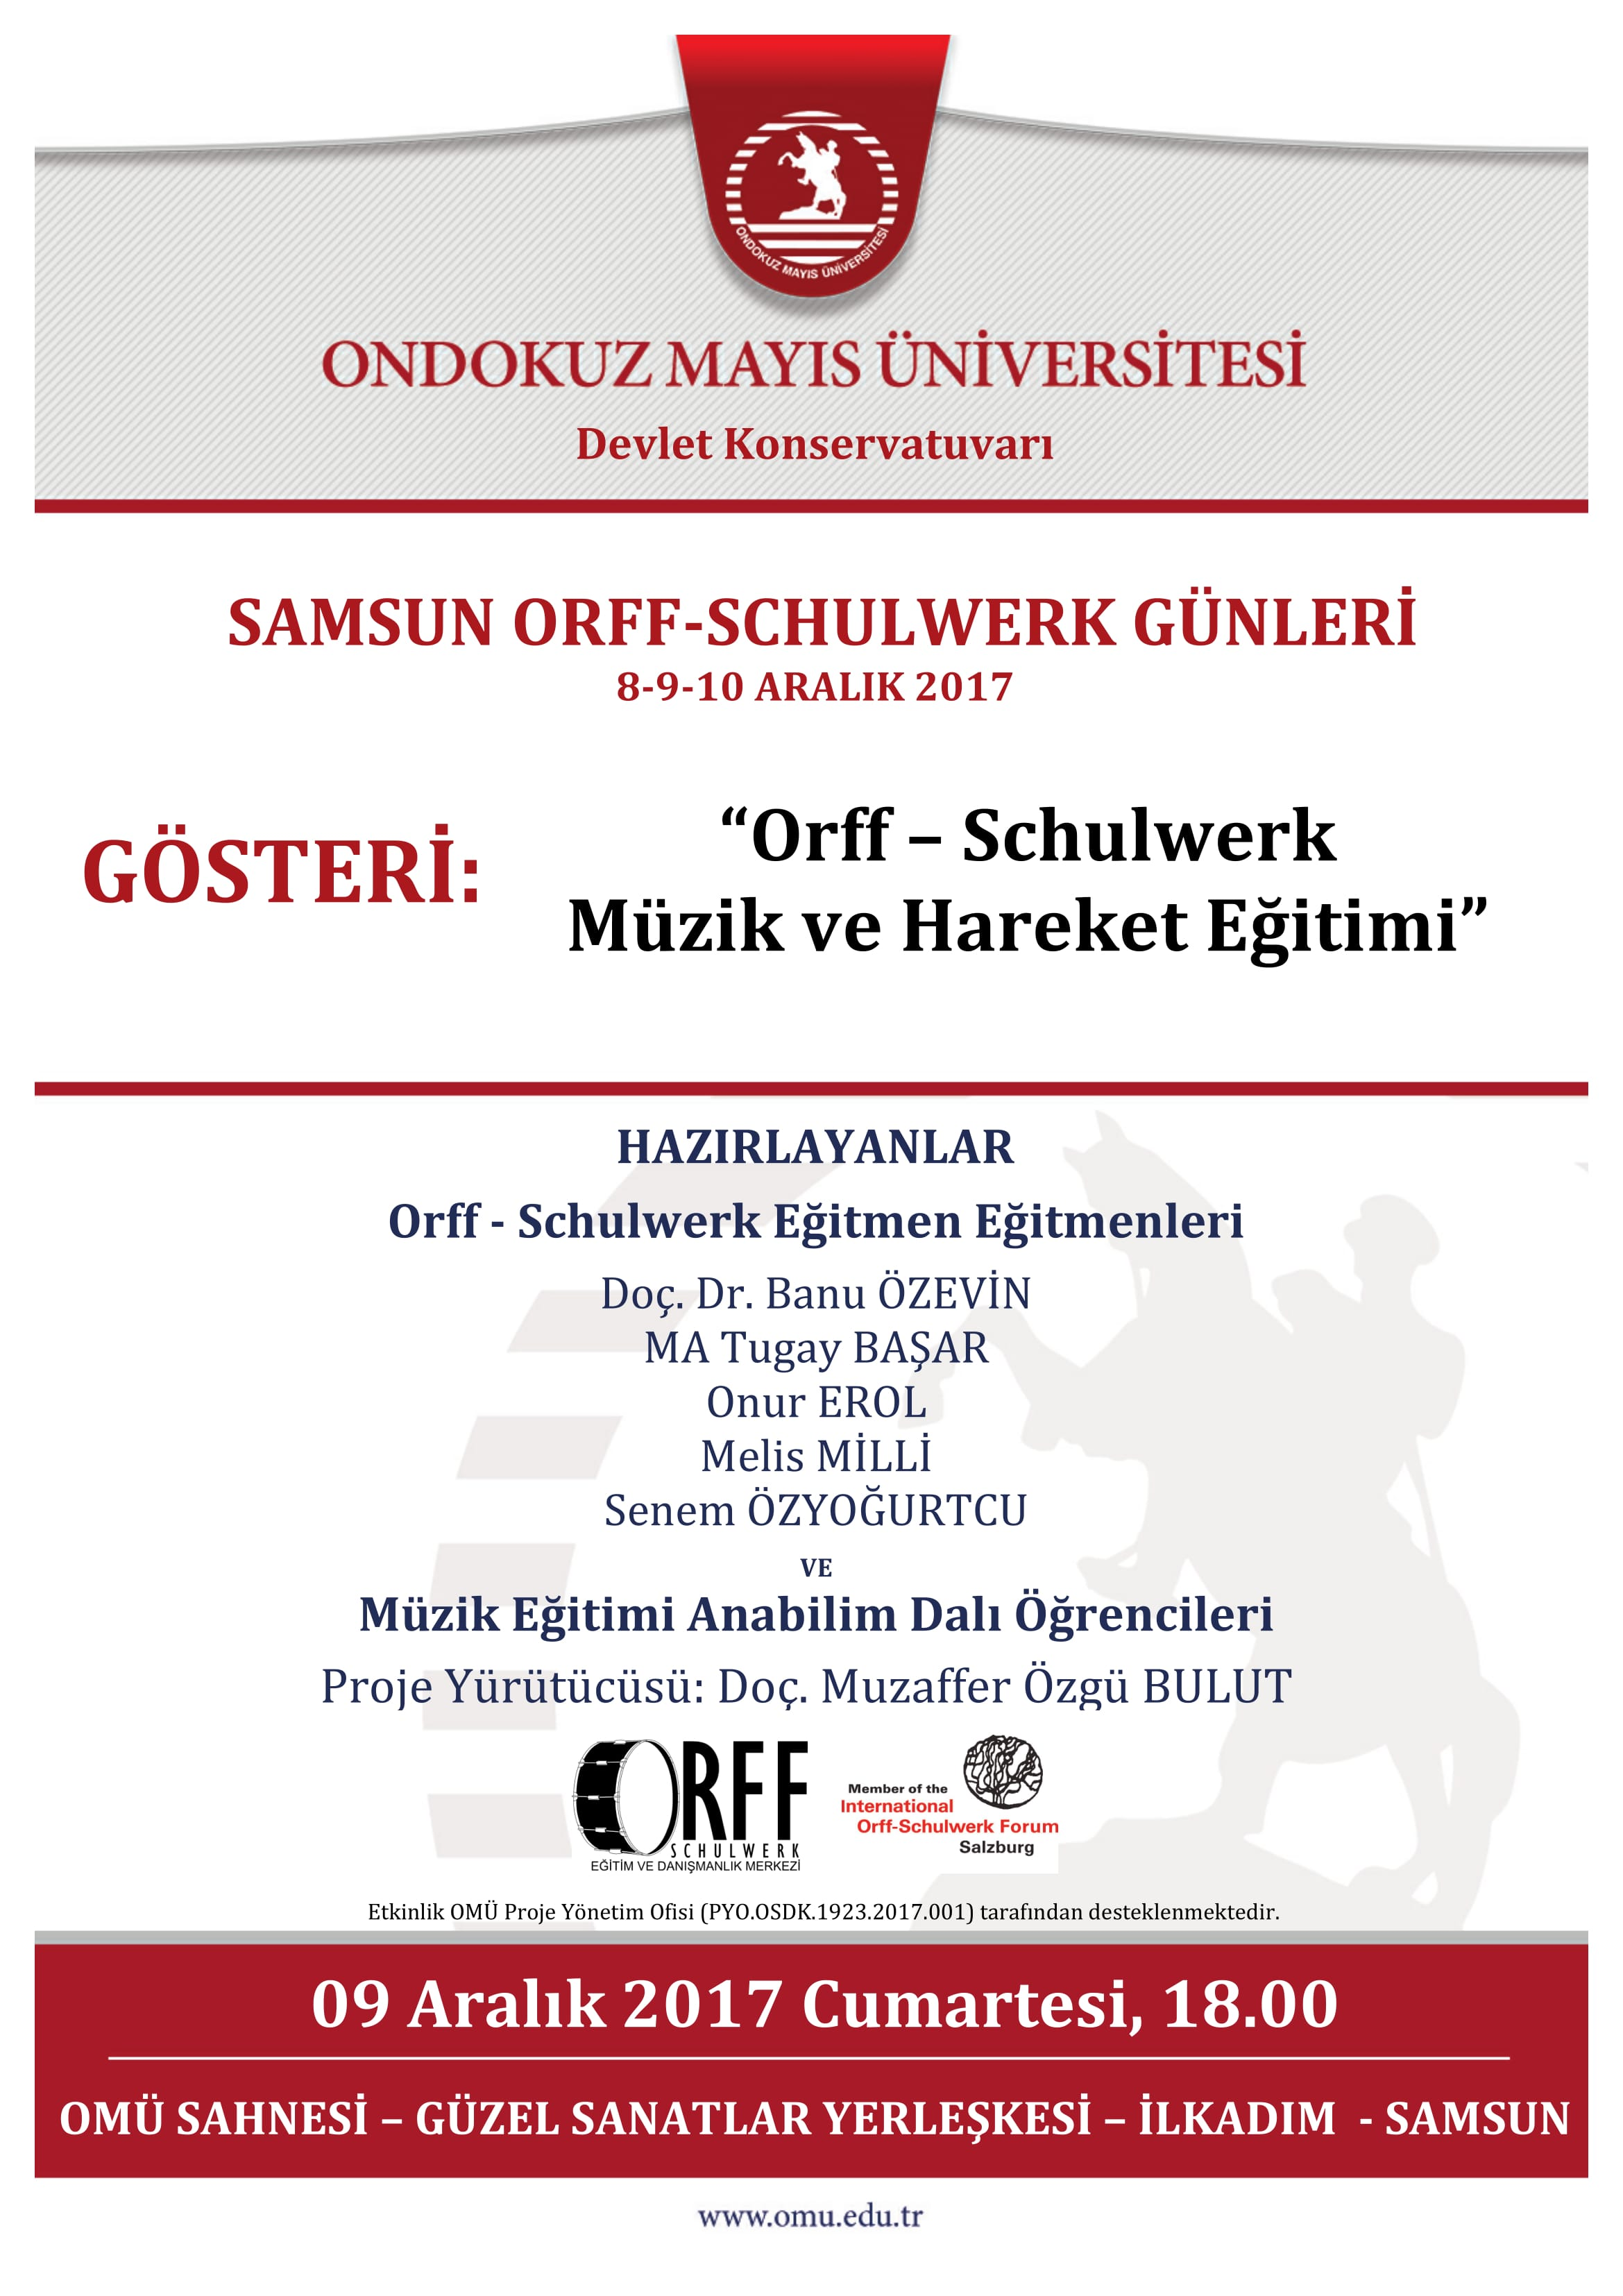 http://www.omu.edu.tr/sites/default/files/samsun_orff_gosteri_afisi-1.jpg